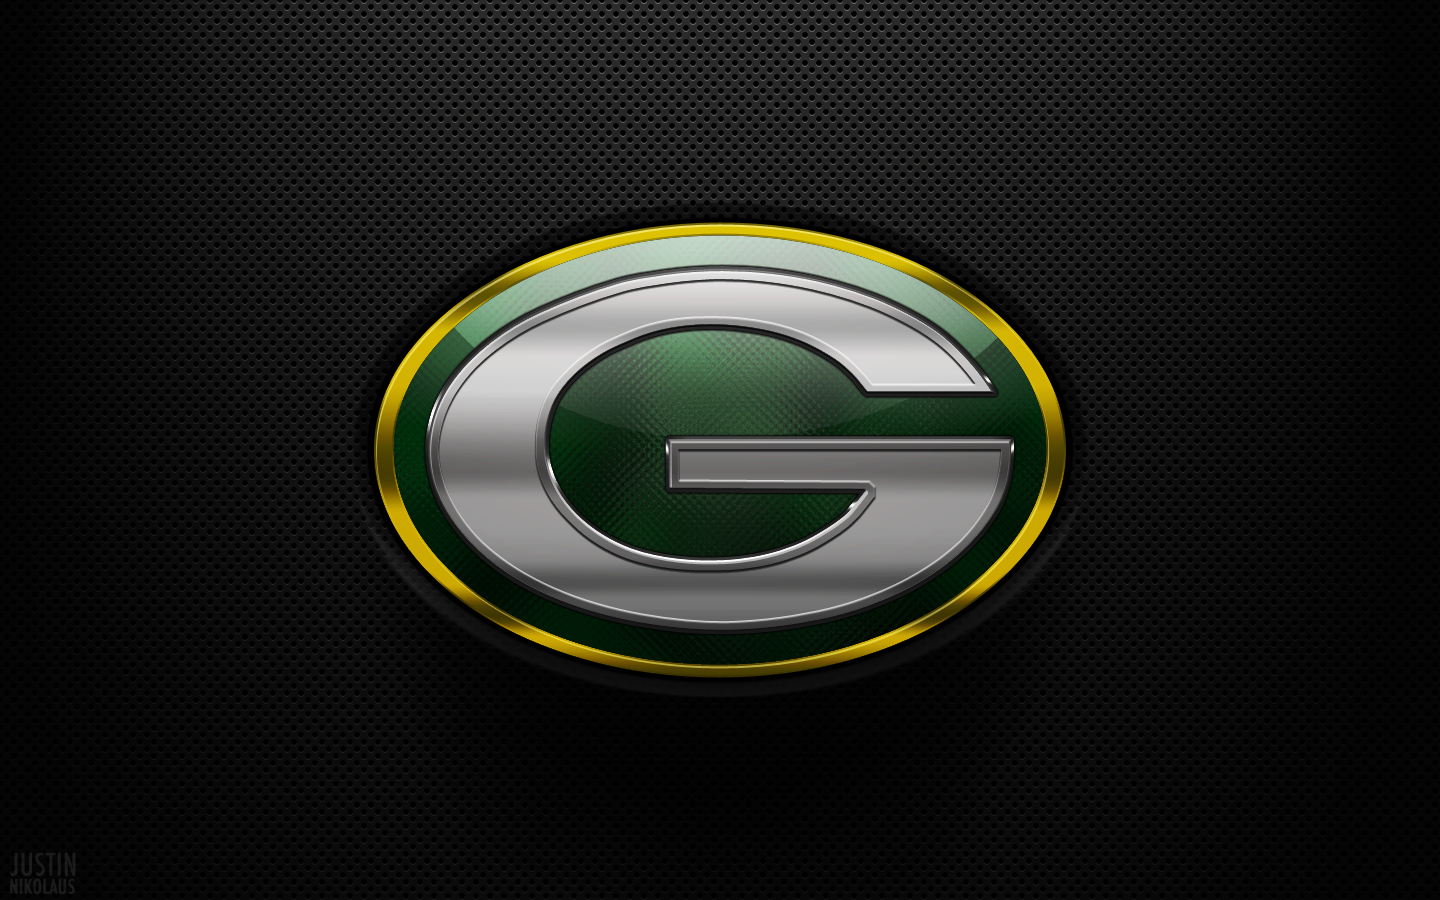 High Quality Packers Wallpaper | Full HD Pics